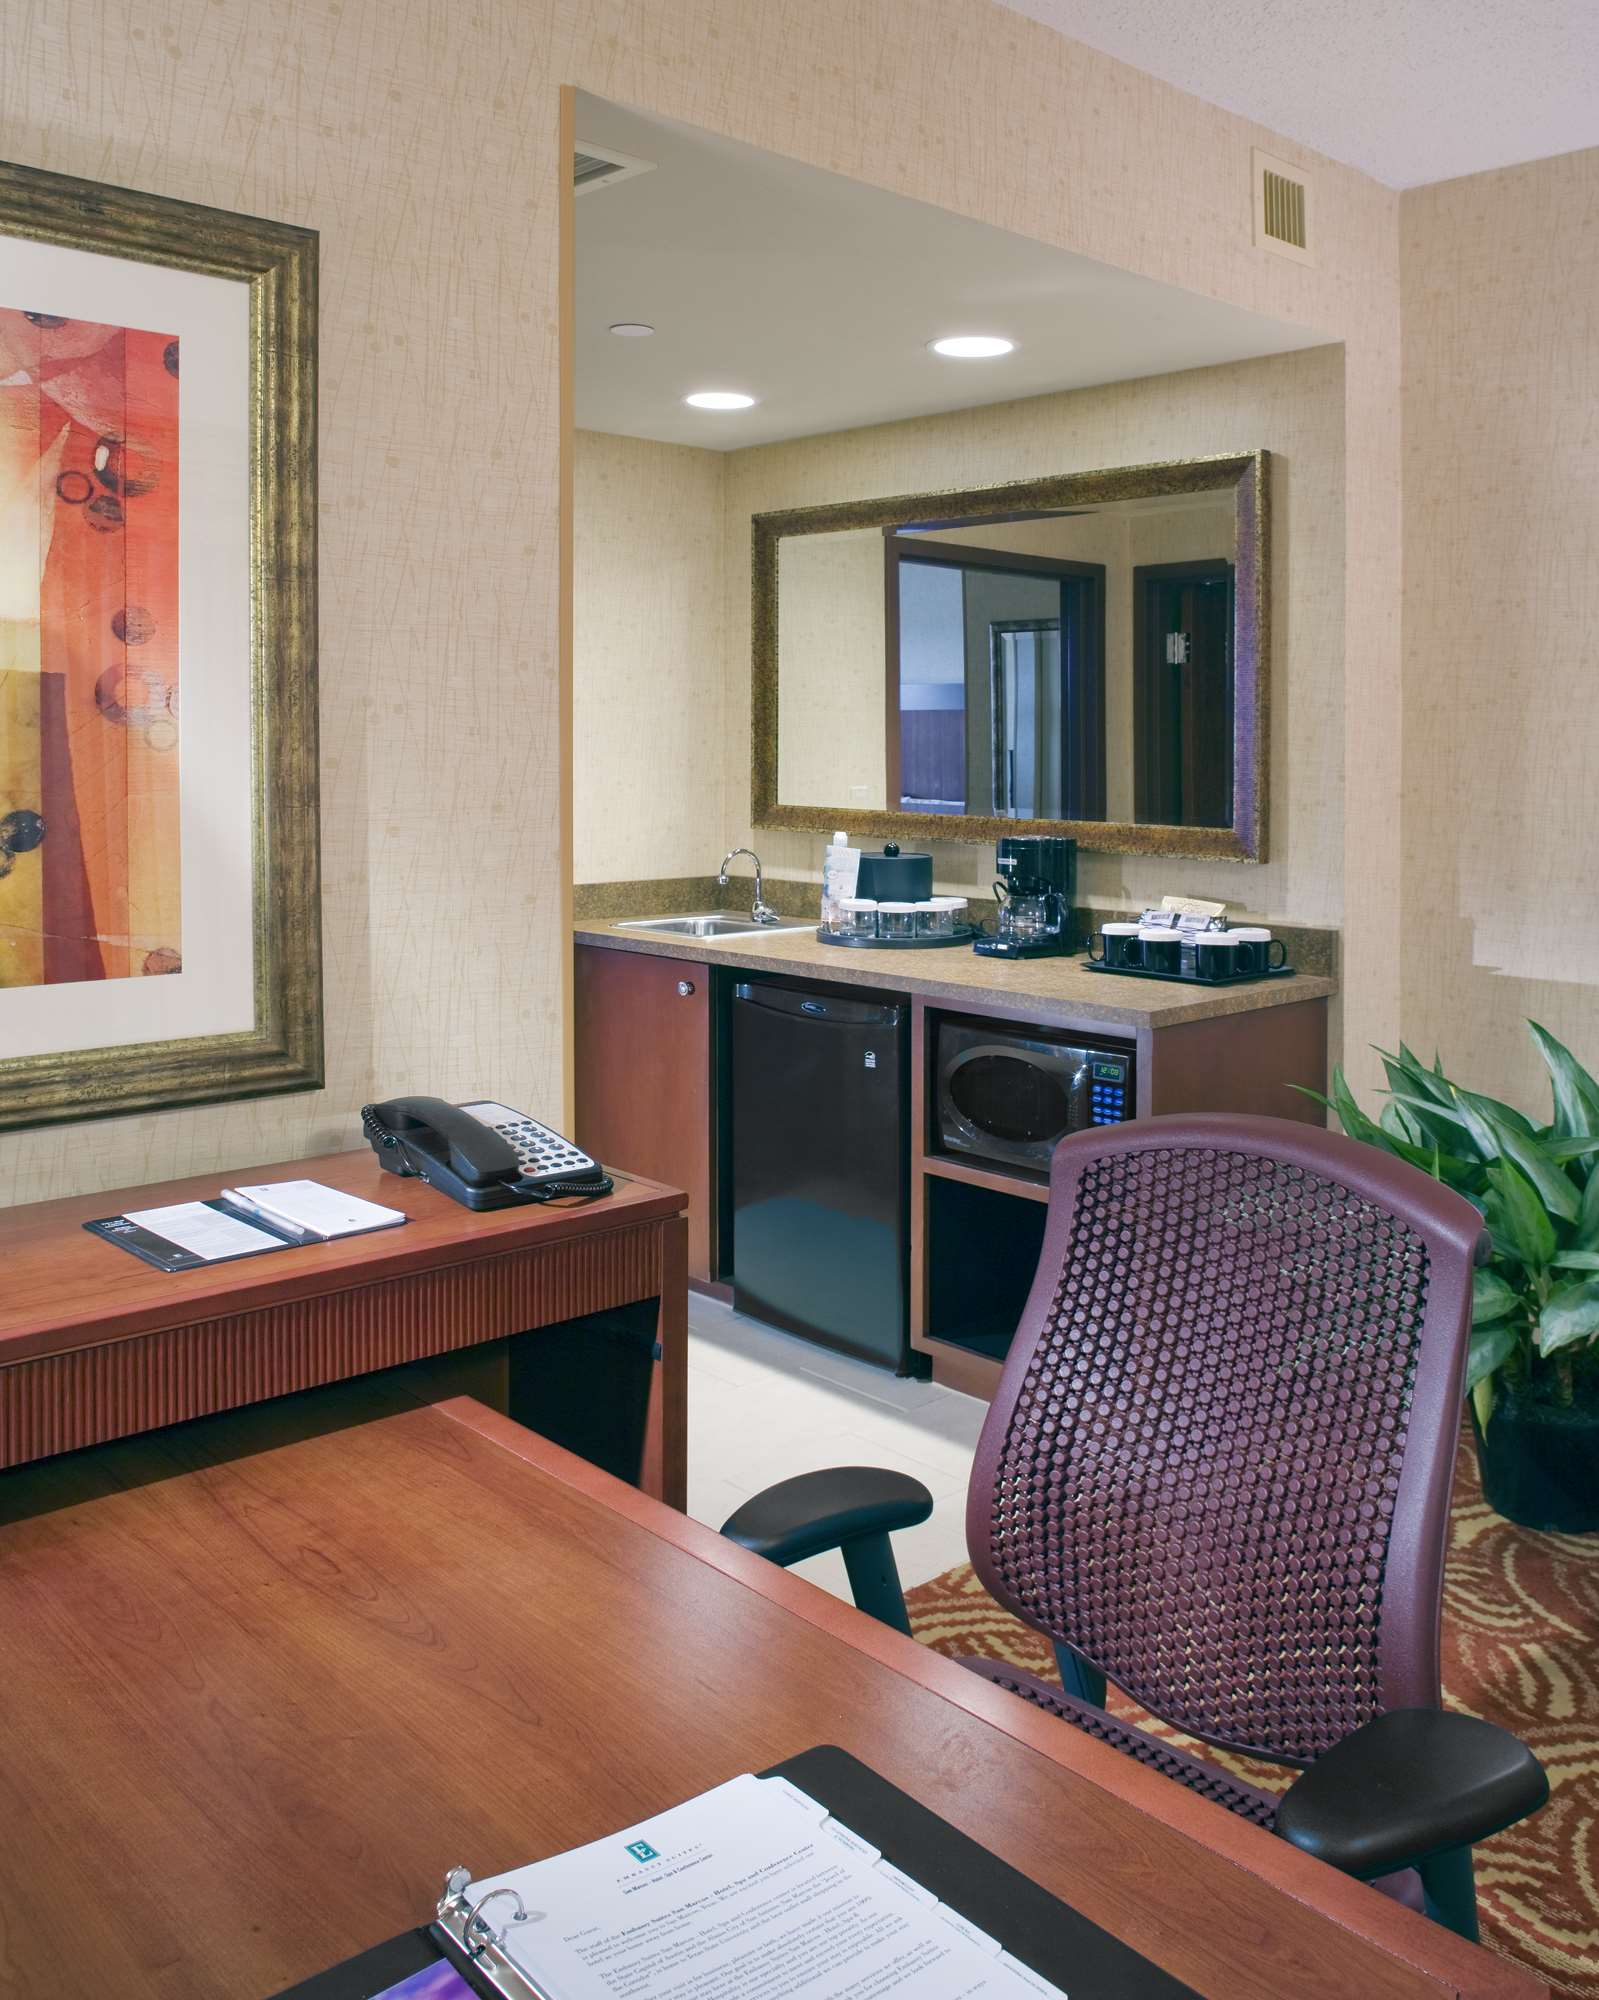 Embassy Suites by Hilton San Marcos Hotel Conference Center & Spa image 20